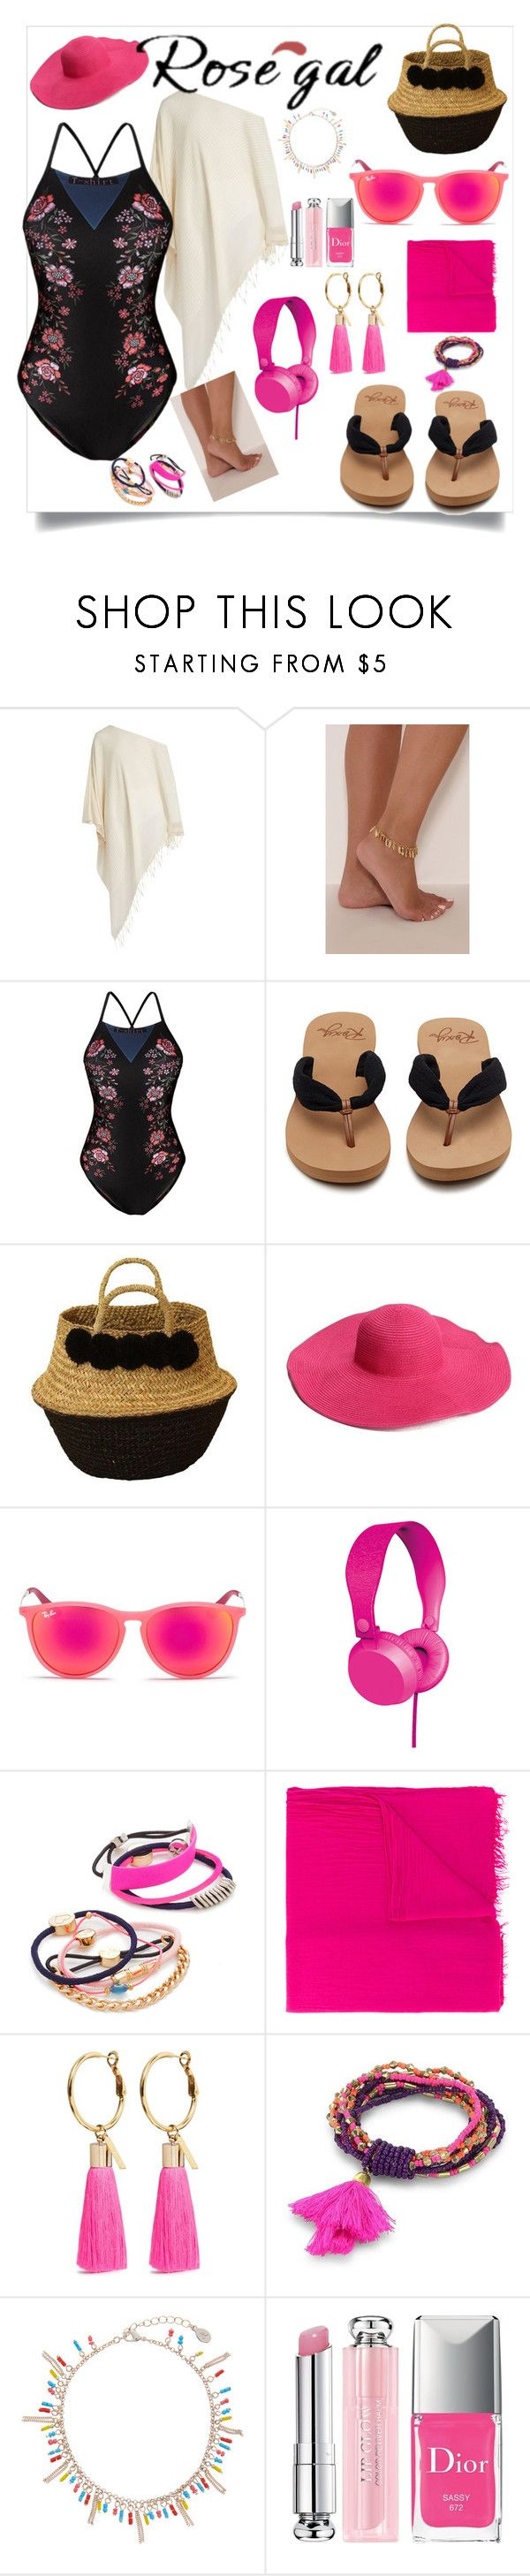 """Untitled #192"" by rozy56 ❤ liked on Polyvore featuring Su Paris, Ray-Ban, By Lilla, Étoile Isabel Marant, Mignonne Gavigan, Robert Rose, Accessorize and Christian Dior"